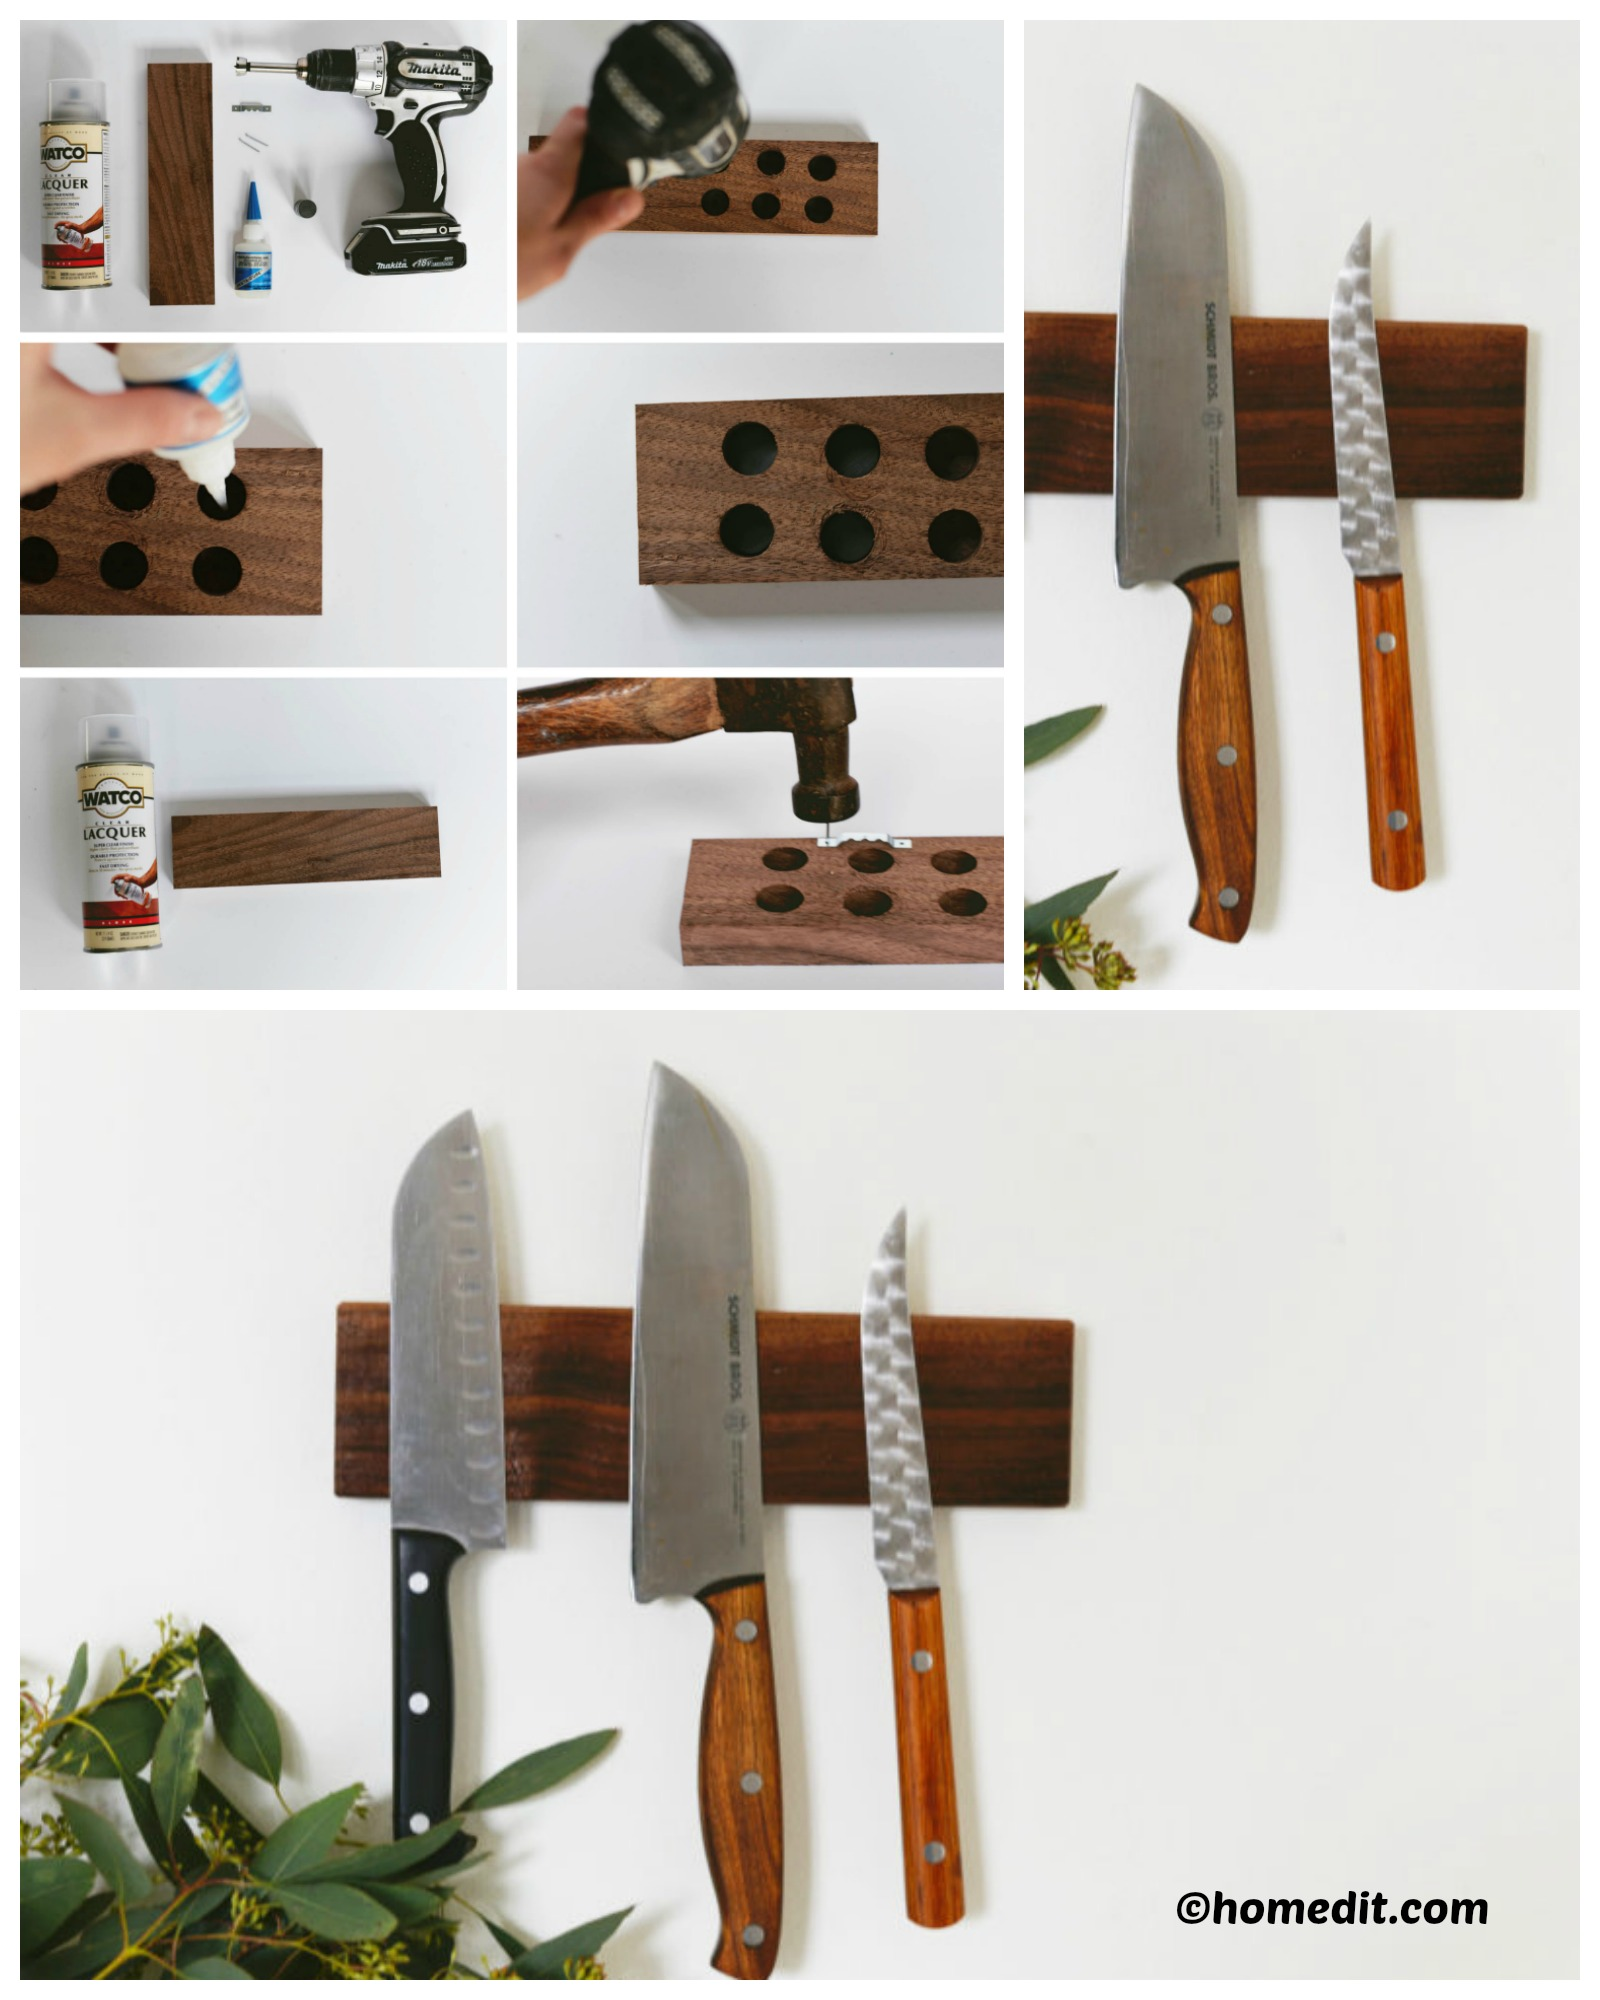 How to make a Magnetic Knife Holder